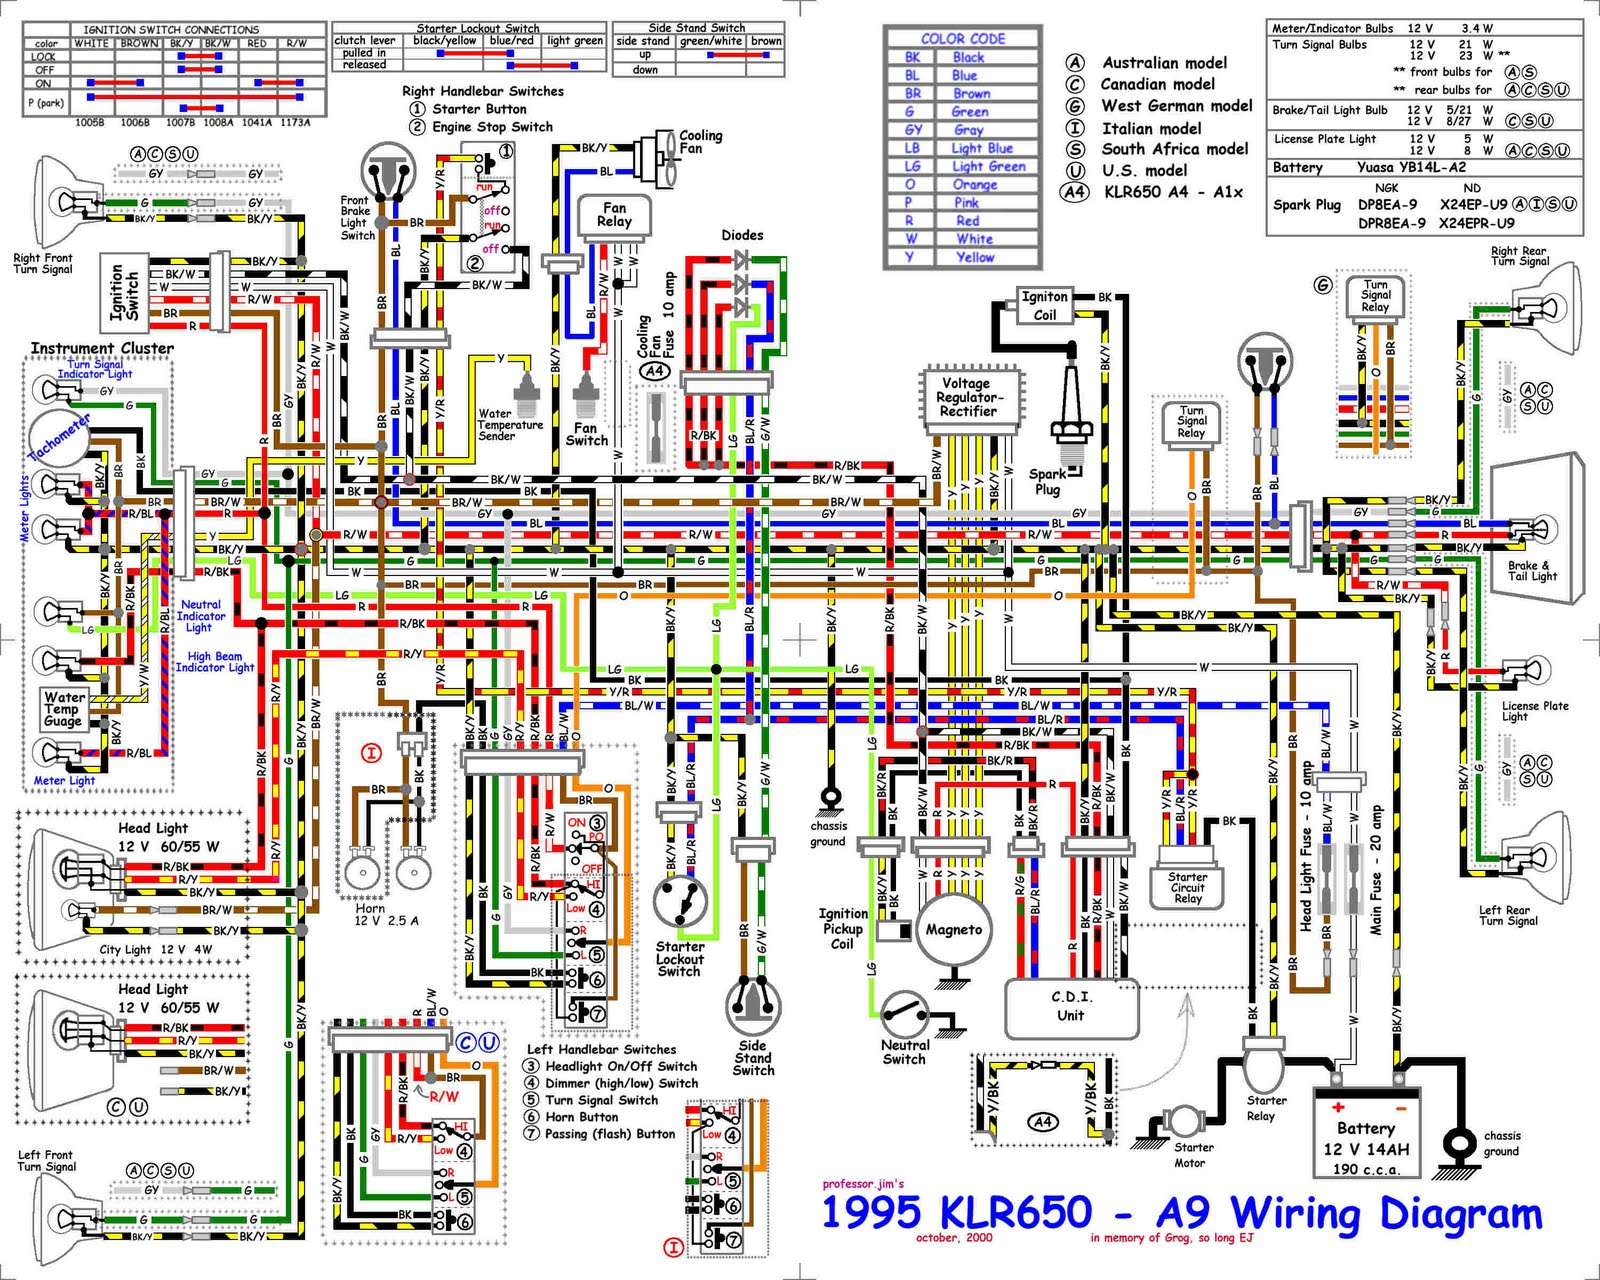 2004 Monte Carlo Fuse Box Wiring Library 2006 Diagram 1995 Chevy Engine Smart Diagrams U2022 Impala